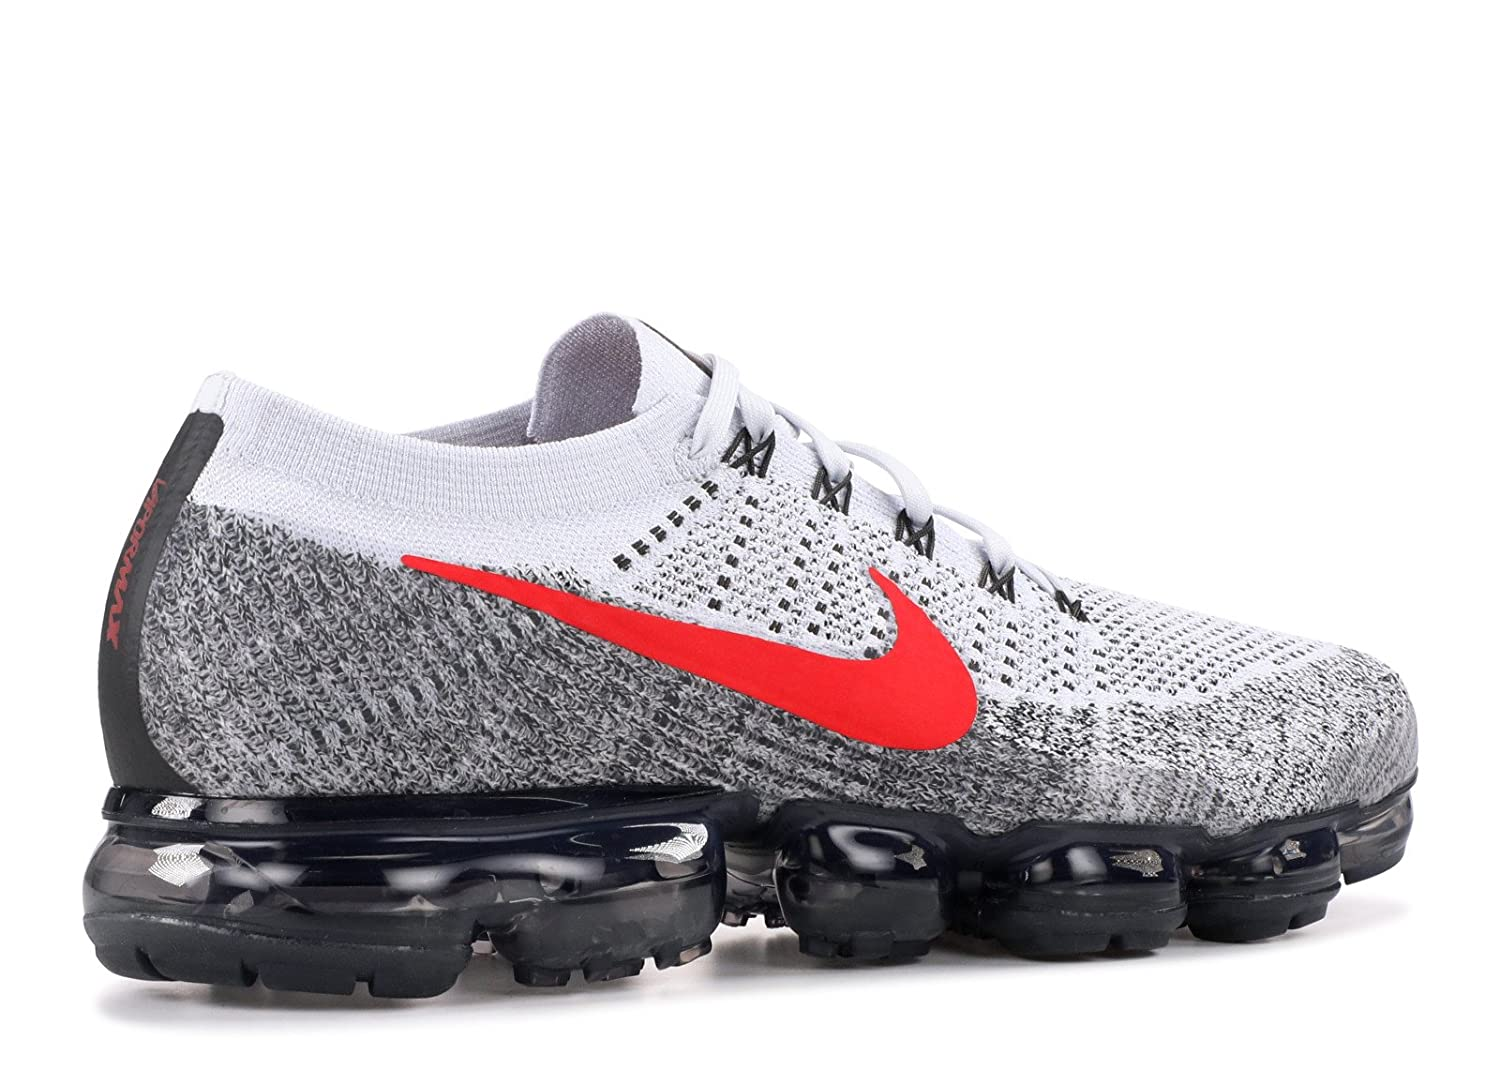 73a0b8e8f8 SasleTOPS Air Vapormax Flyknit Pure Platinum University Red 849558 020 Mens  Running Shoes: Amazon.co.uk: Shoes & Bags